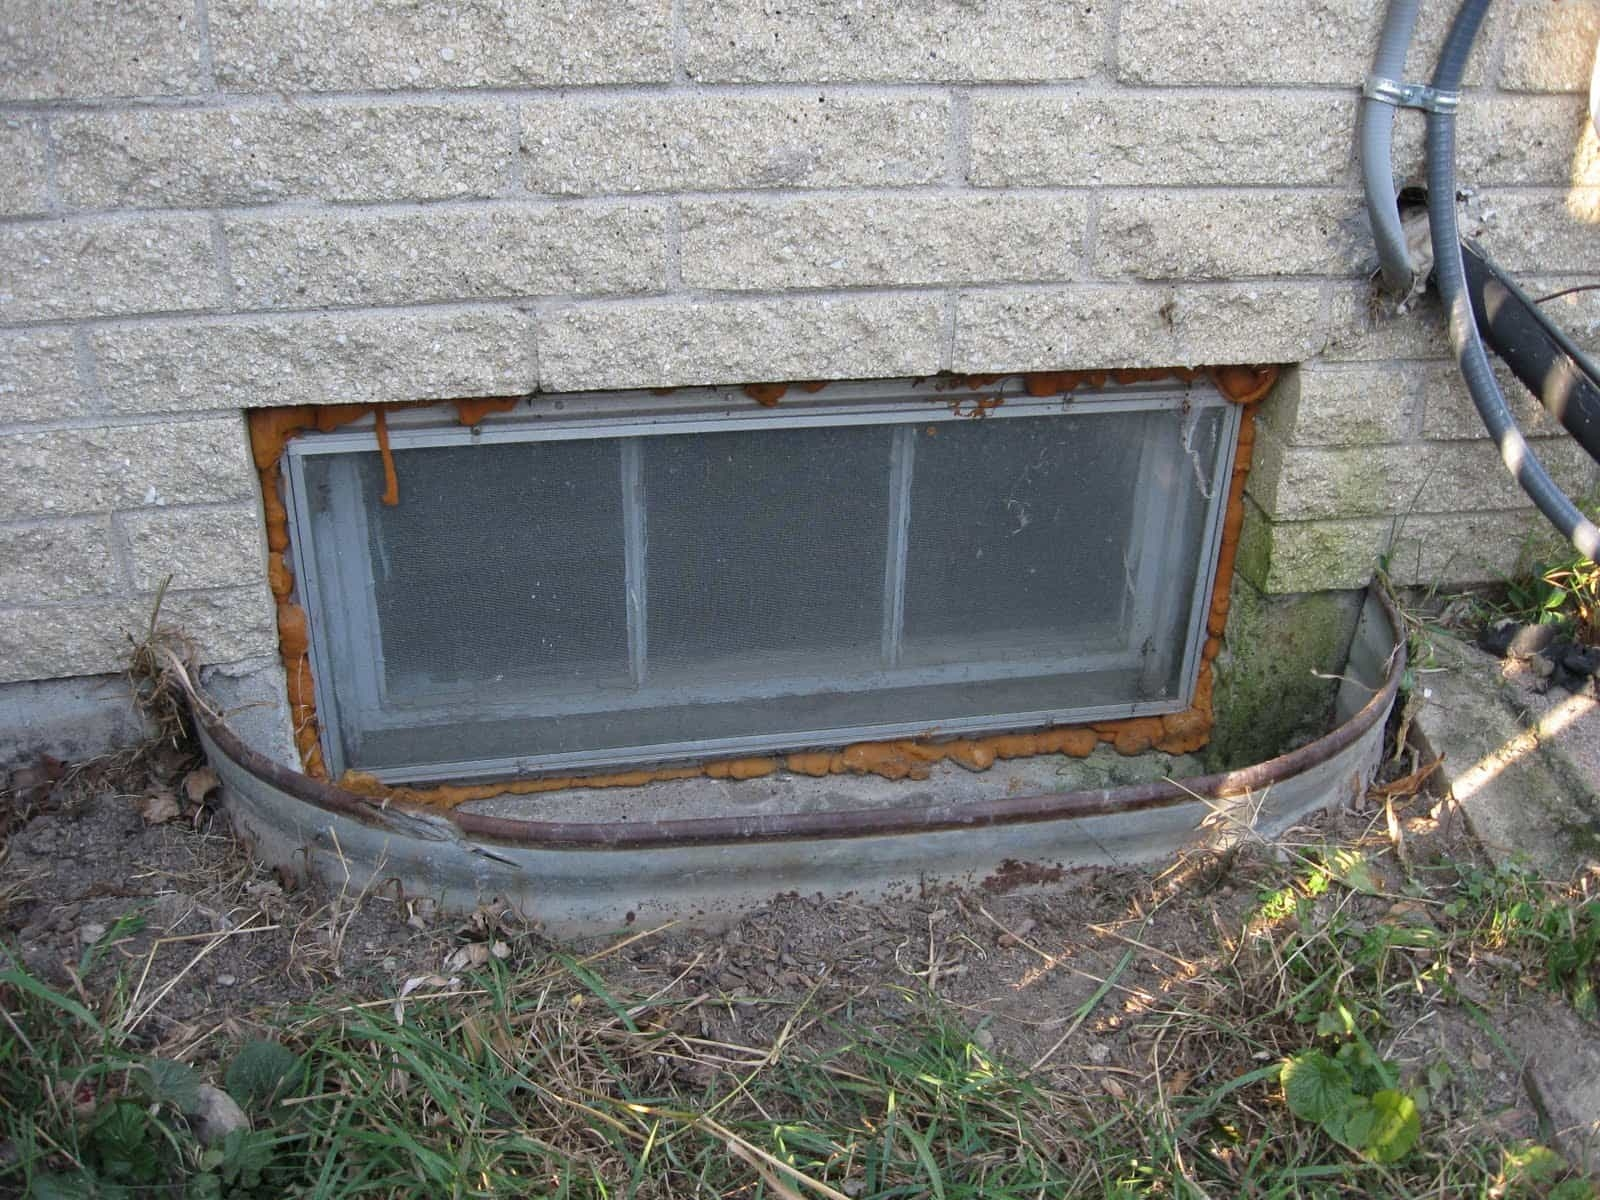 Basement Window Covers Prevent Water Damage